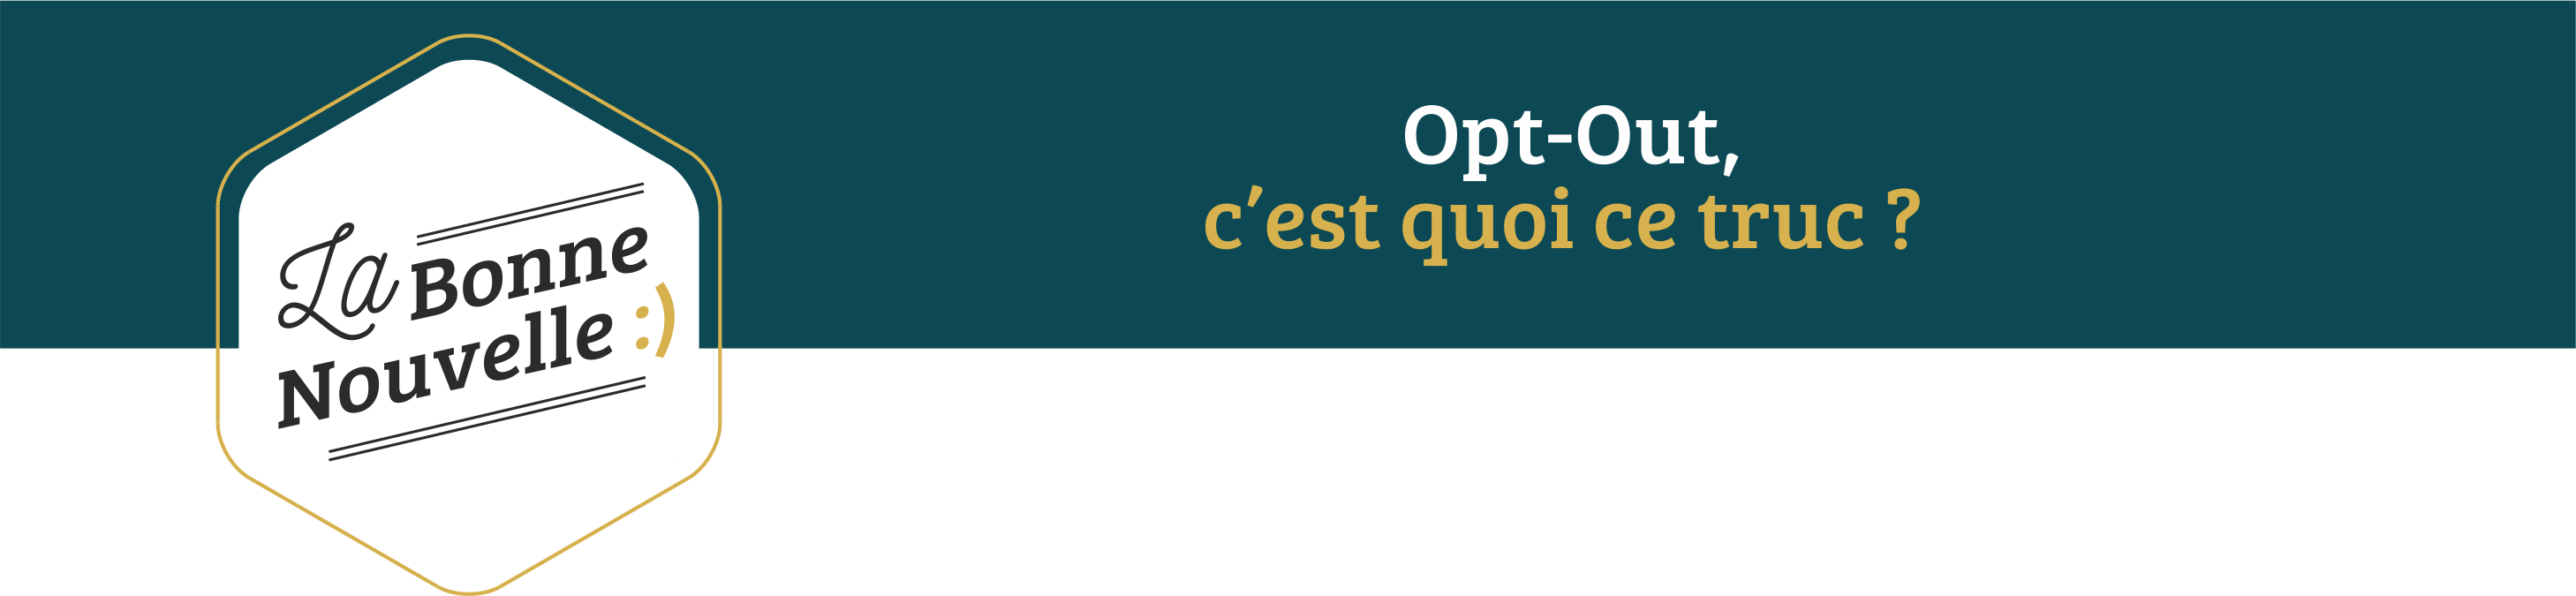 infographie juridique Juste Cause opt out